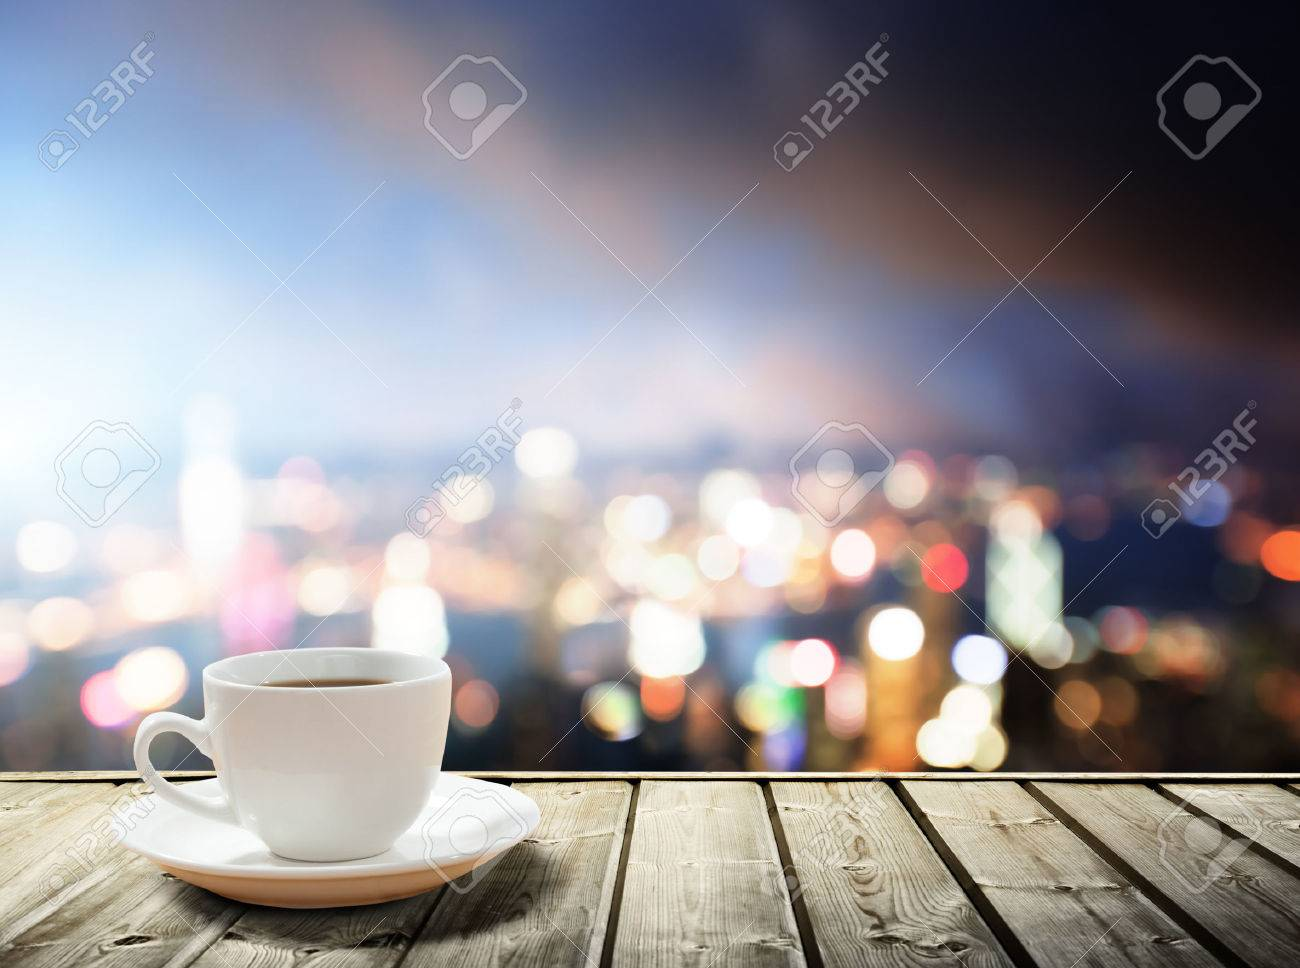 coffee on table in the night city stock photo, picture and royalty